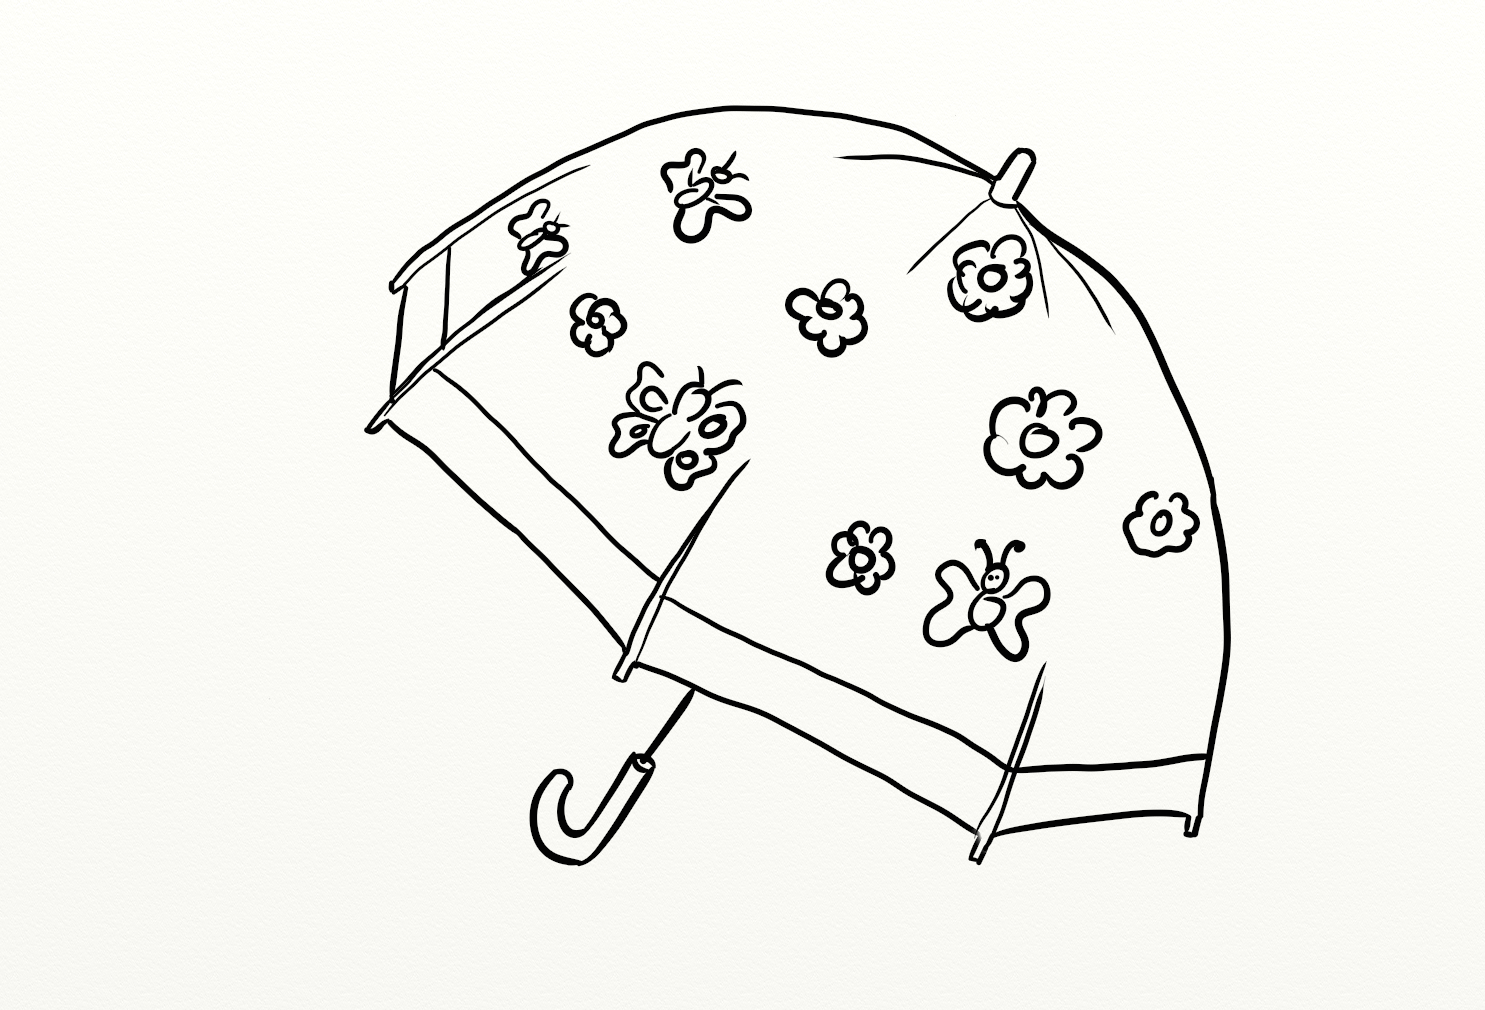 Umbrella Coloring Drawing Free wallpaper